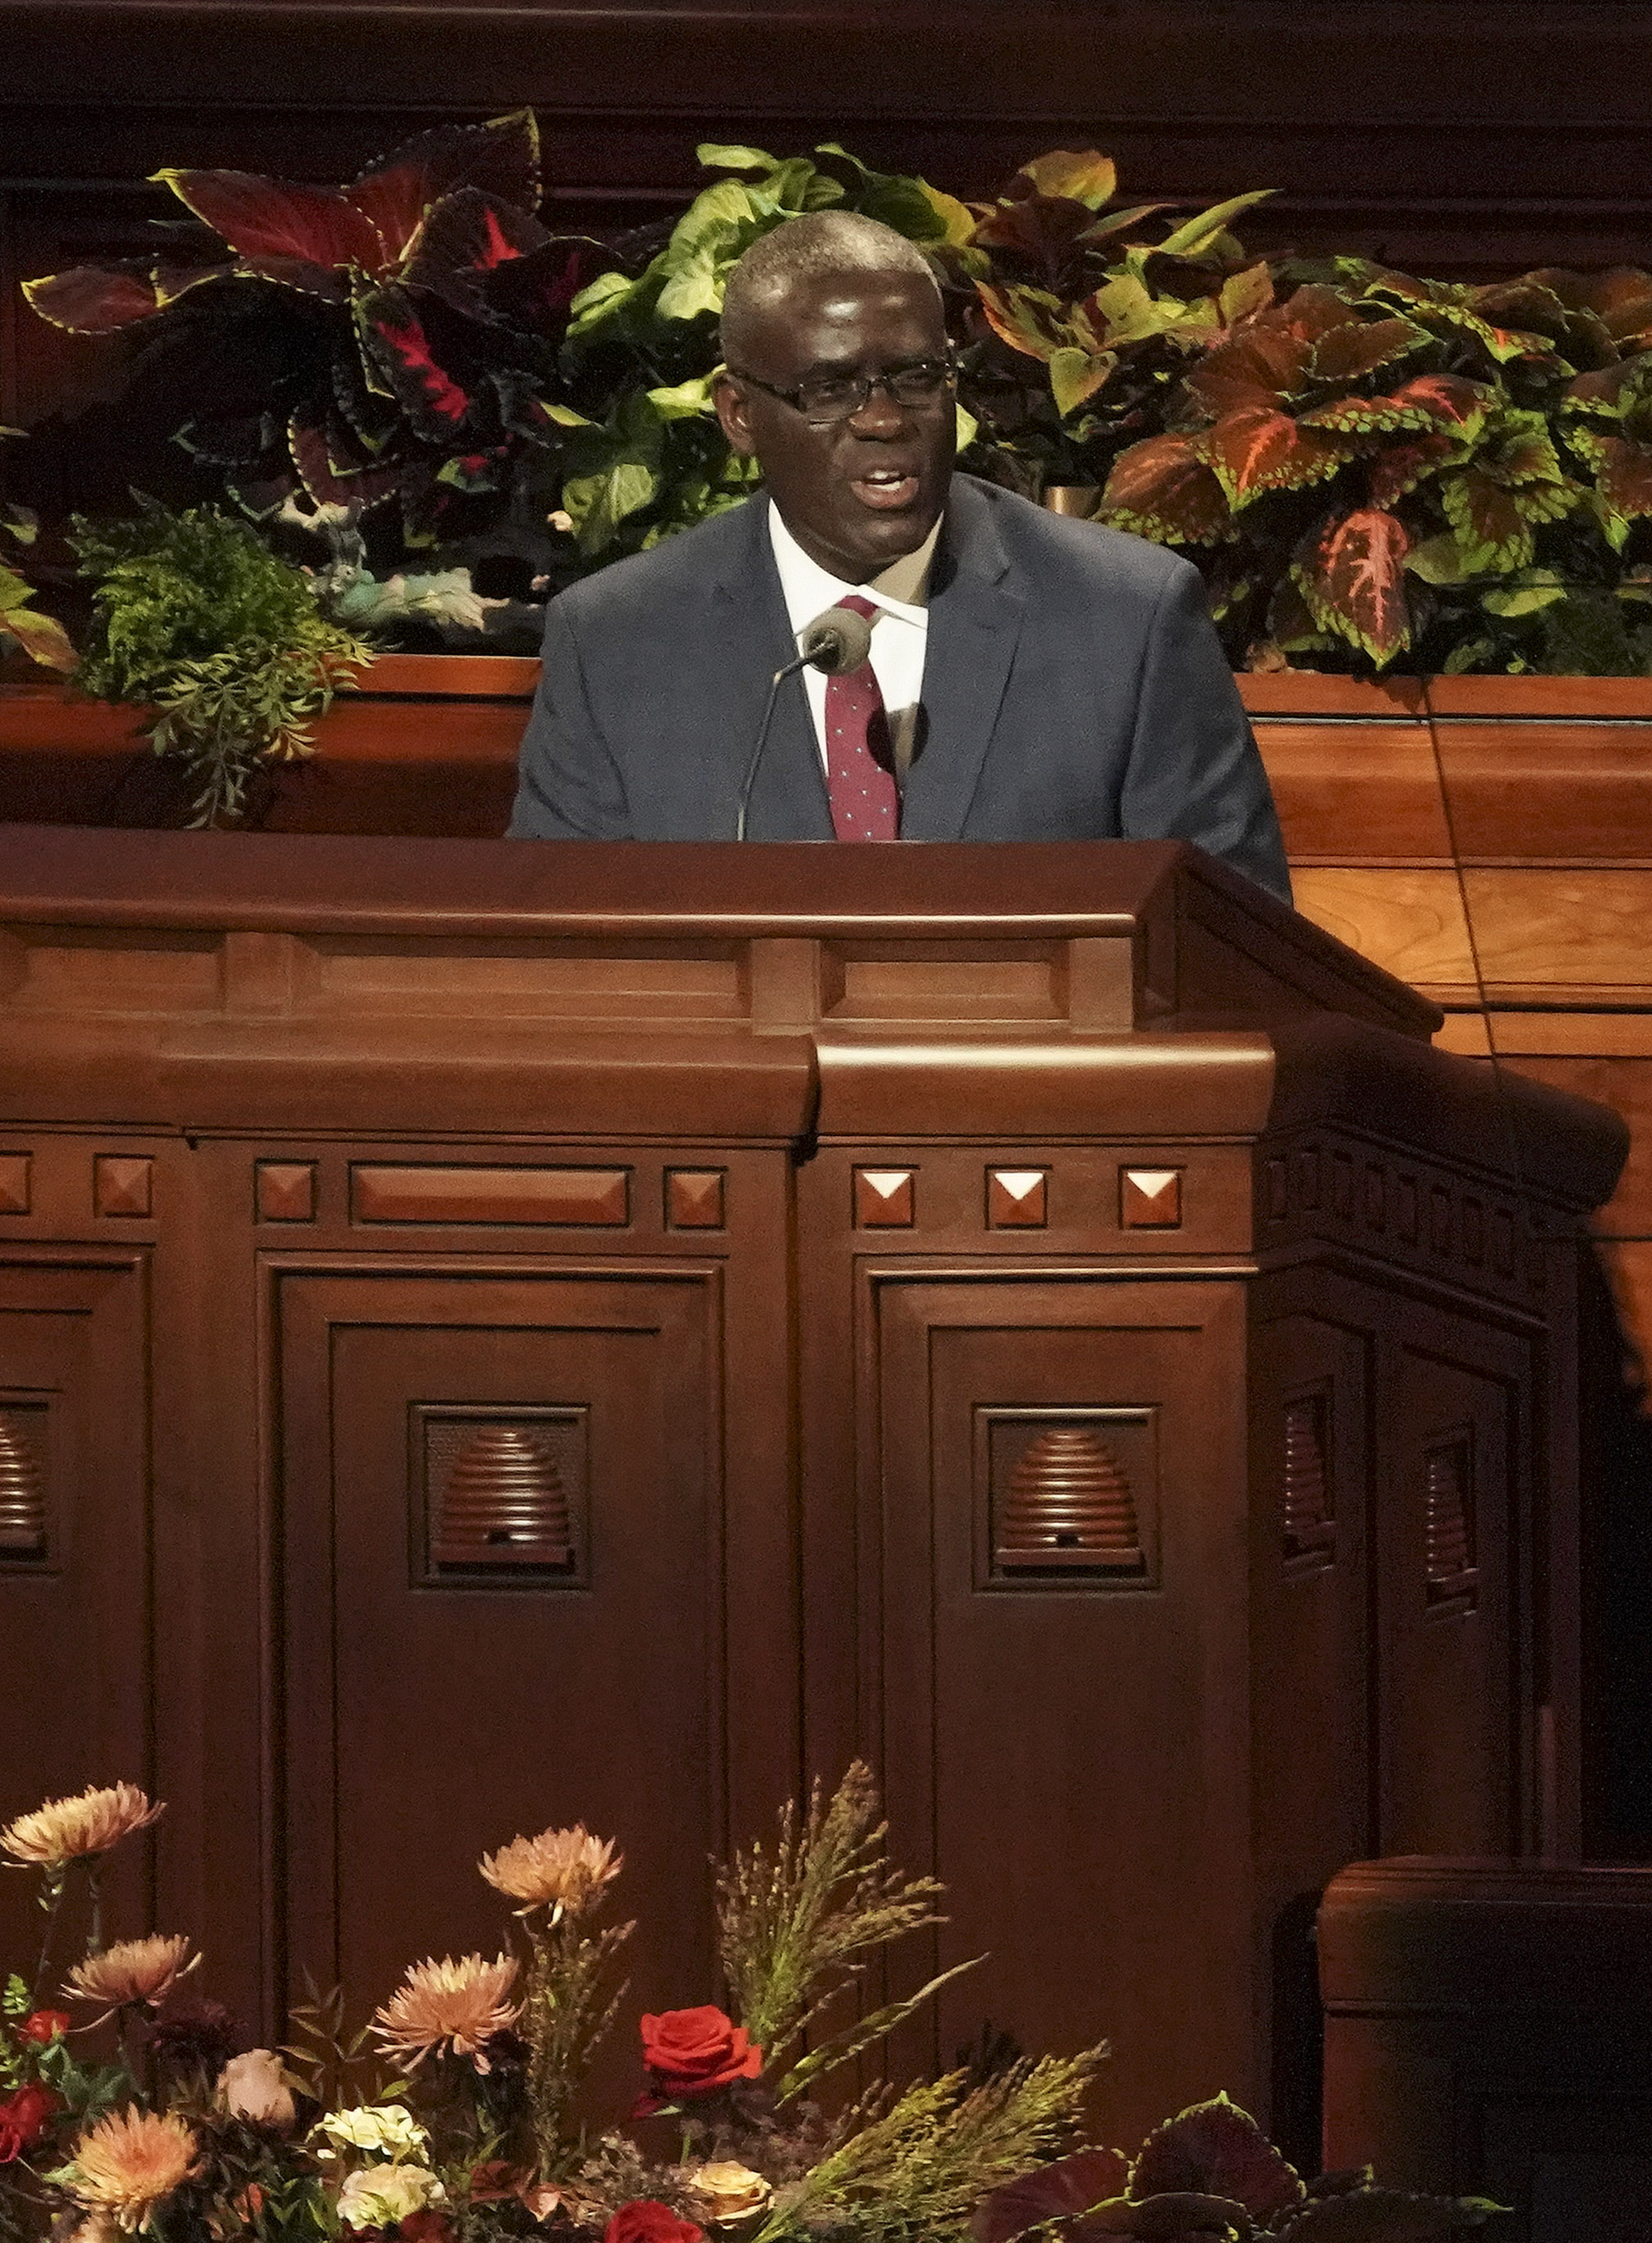 Elder Peter M. Johnson, General Authority Seventy, speaks during the Sunday afternoon session of the 189th Semiannual General Conference of The Church of Jesus Christ of Latter-day Saints in Salt Lake City on Oct. 6, 2019.